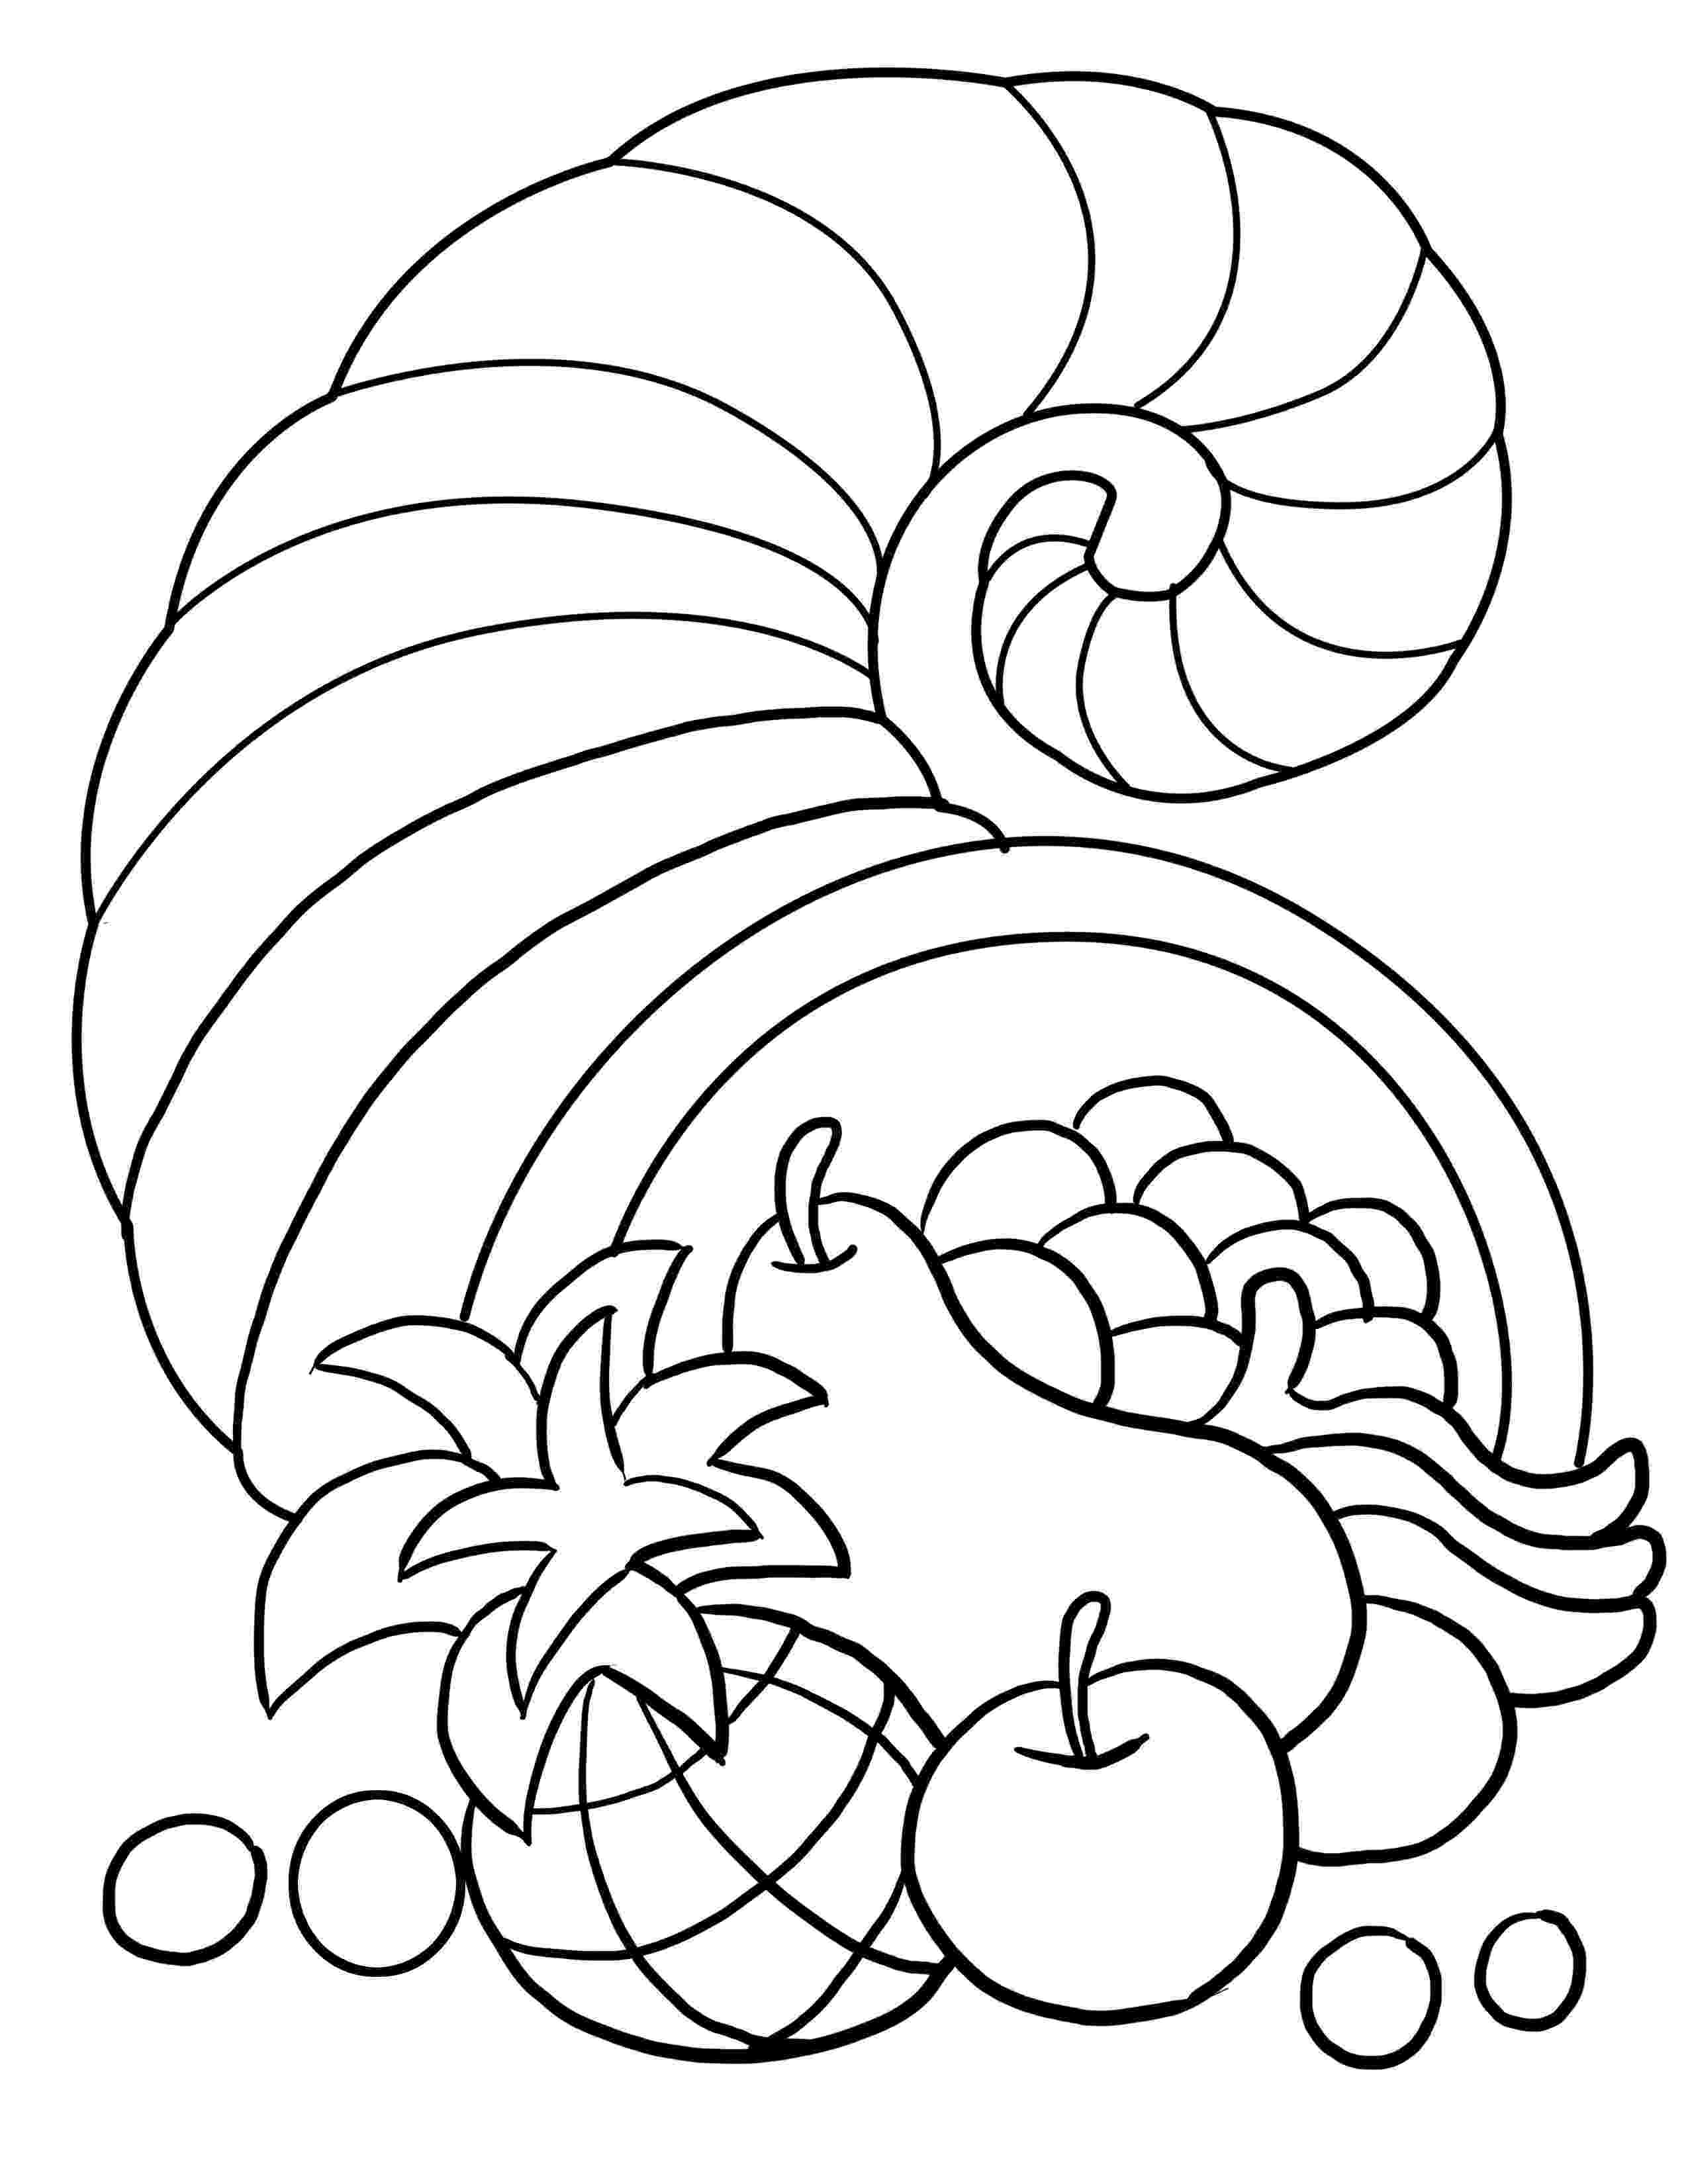 coloring book for thanksgiving thanksgiving coloring pages for book thanksgiving coloring